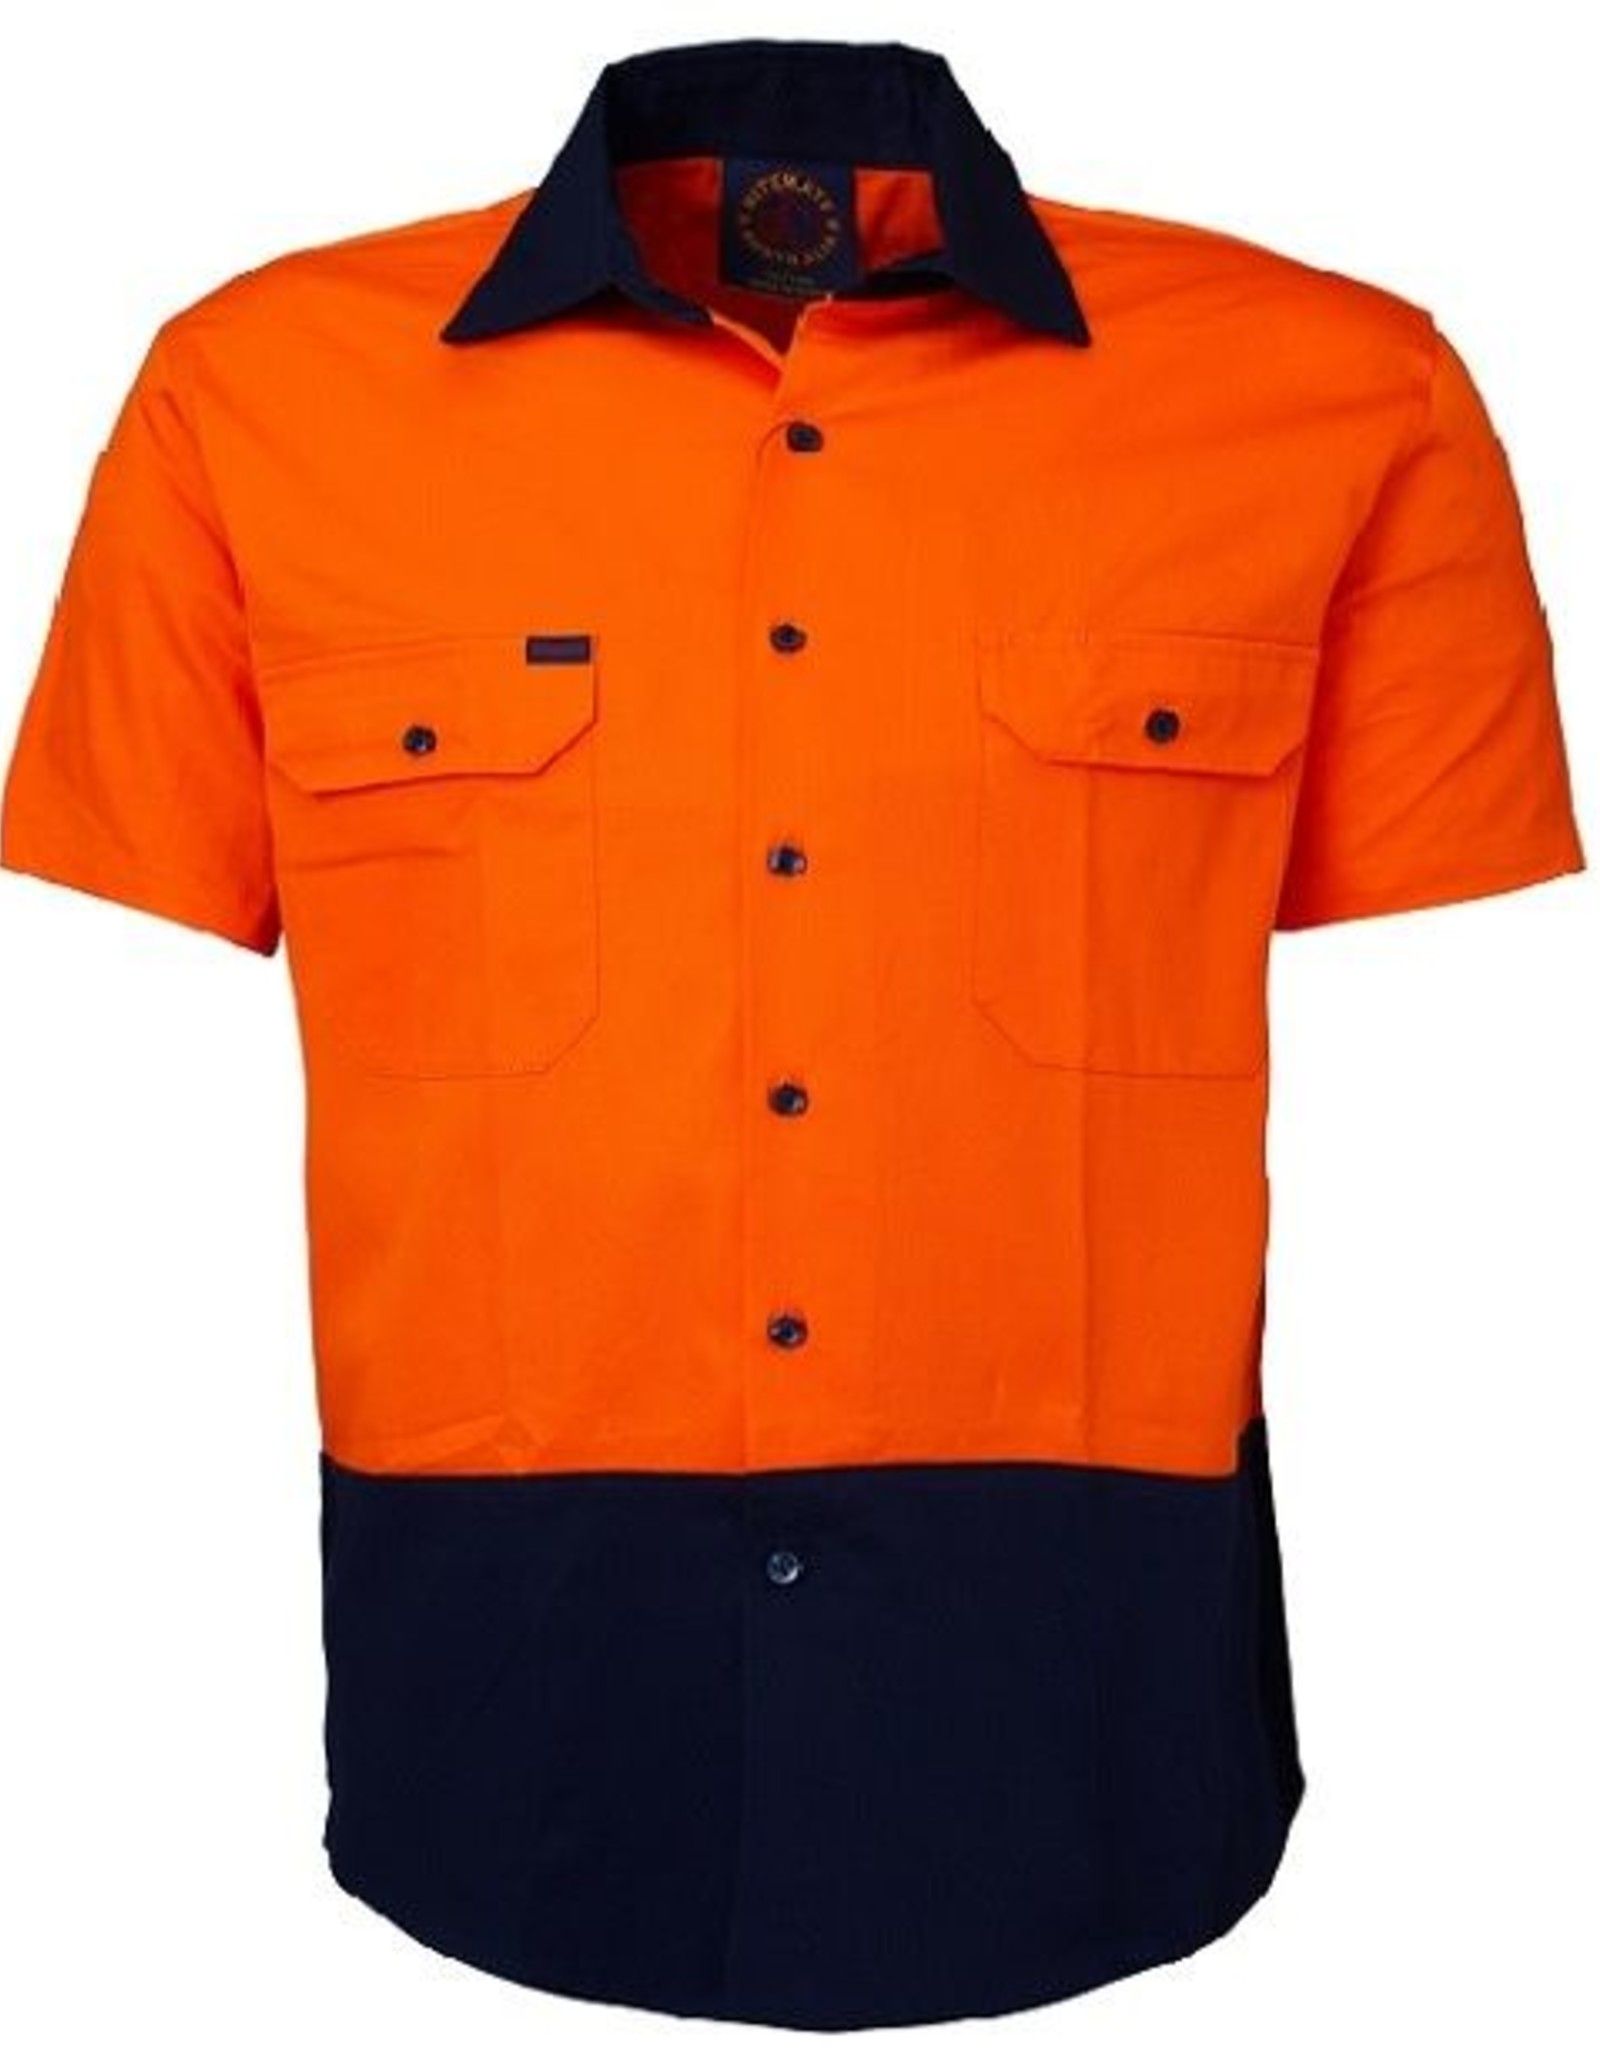 Ritemate Ritemate RM1050S Cotton Twill Hi Vis SS Shirt